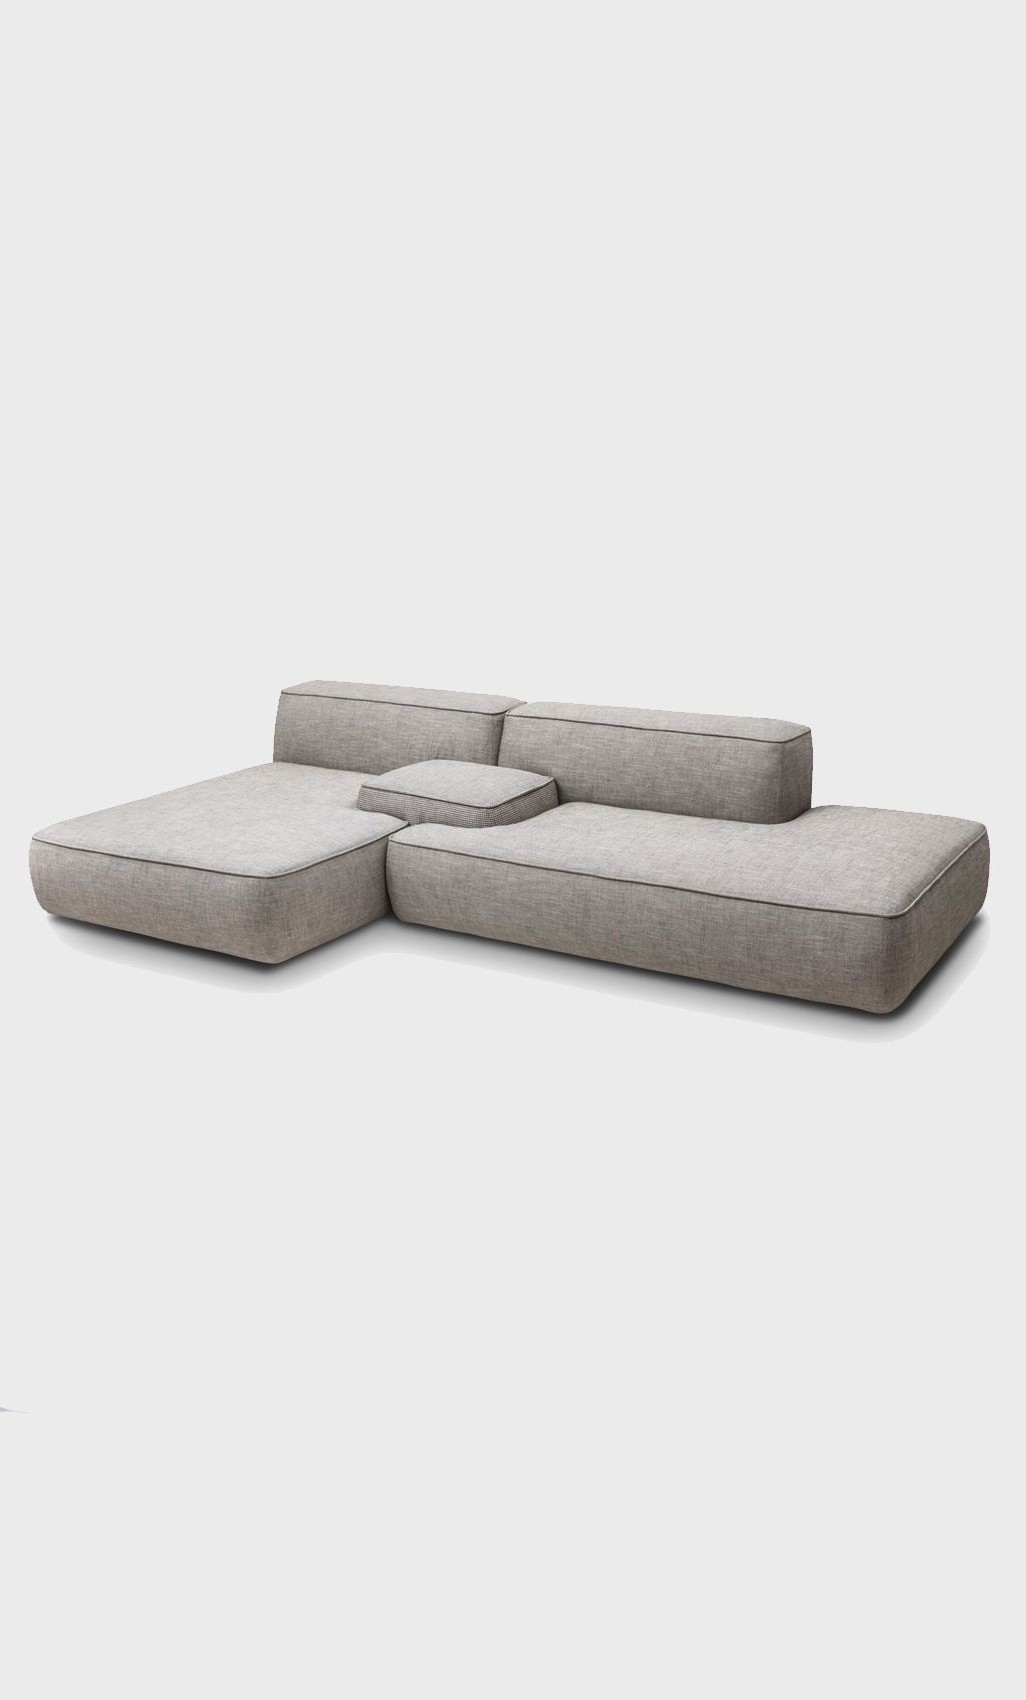 Modular Sofa: No Legs Or Really Small Low Legs (View 9 of 15)